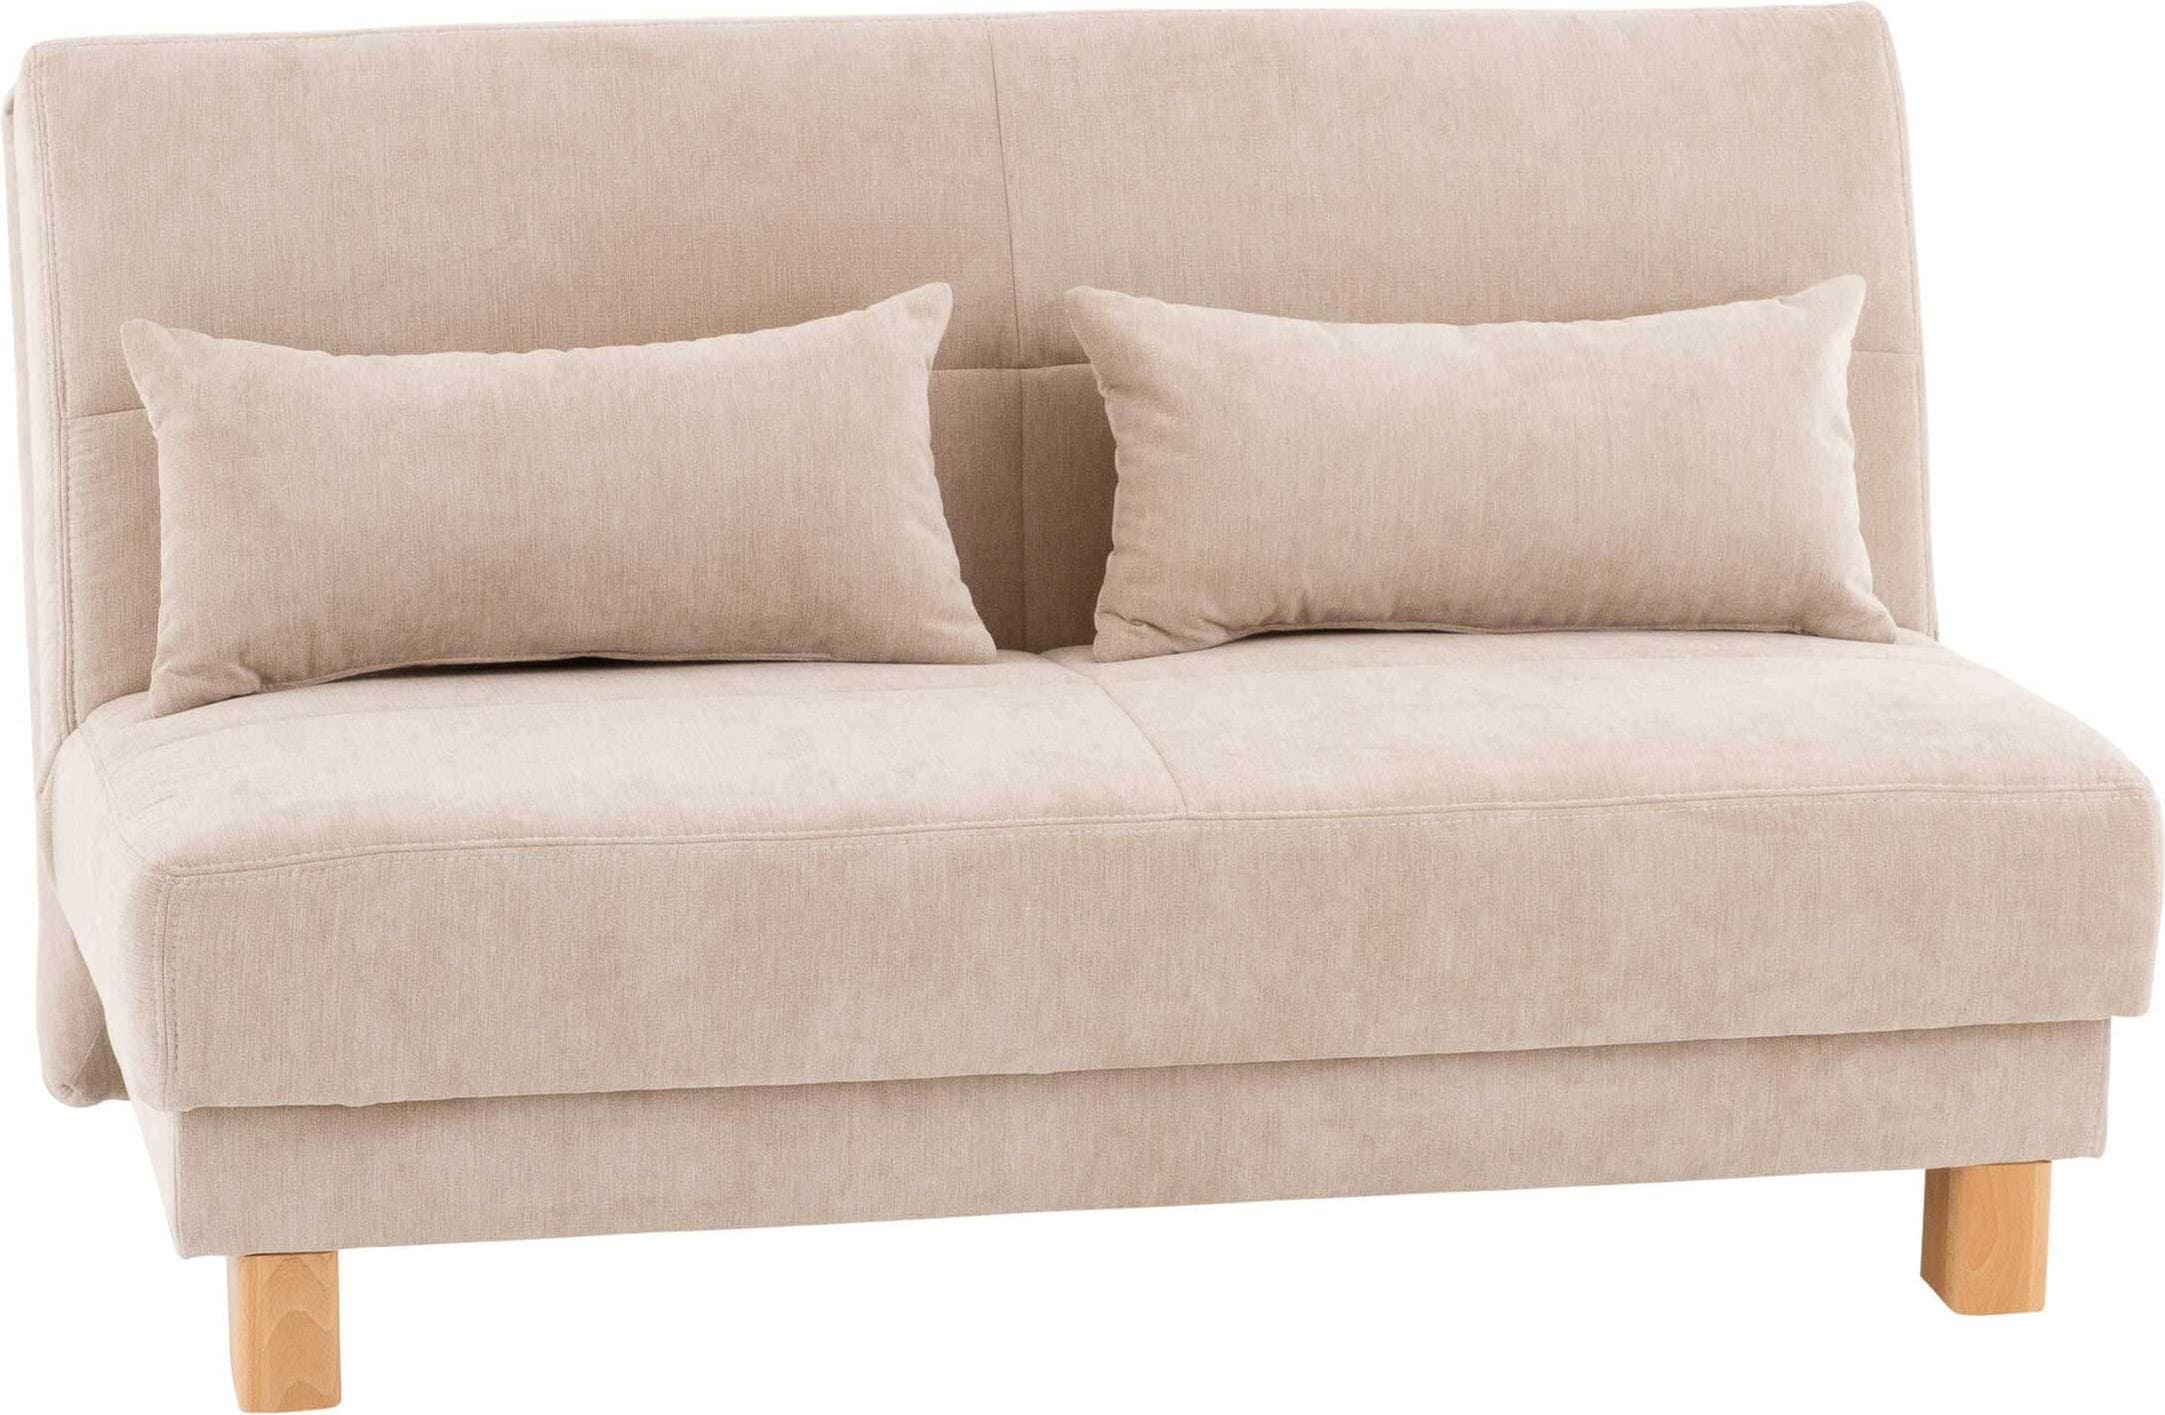 Bettsofa Schubiger Schubiger Möbel Bettsofa Ginger White